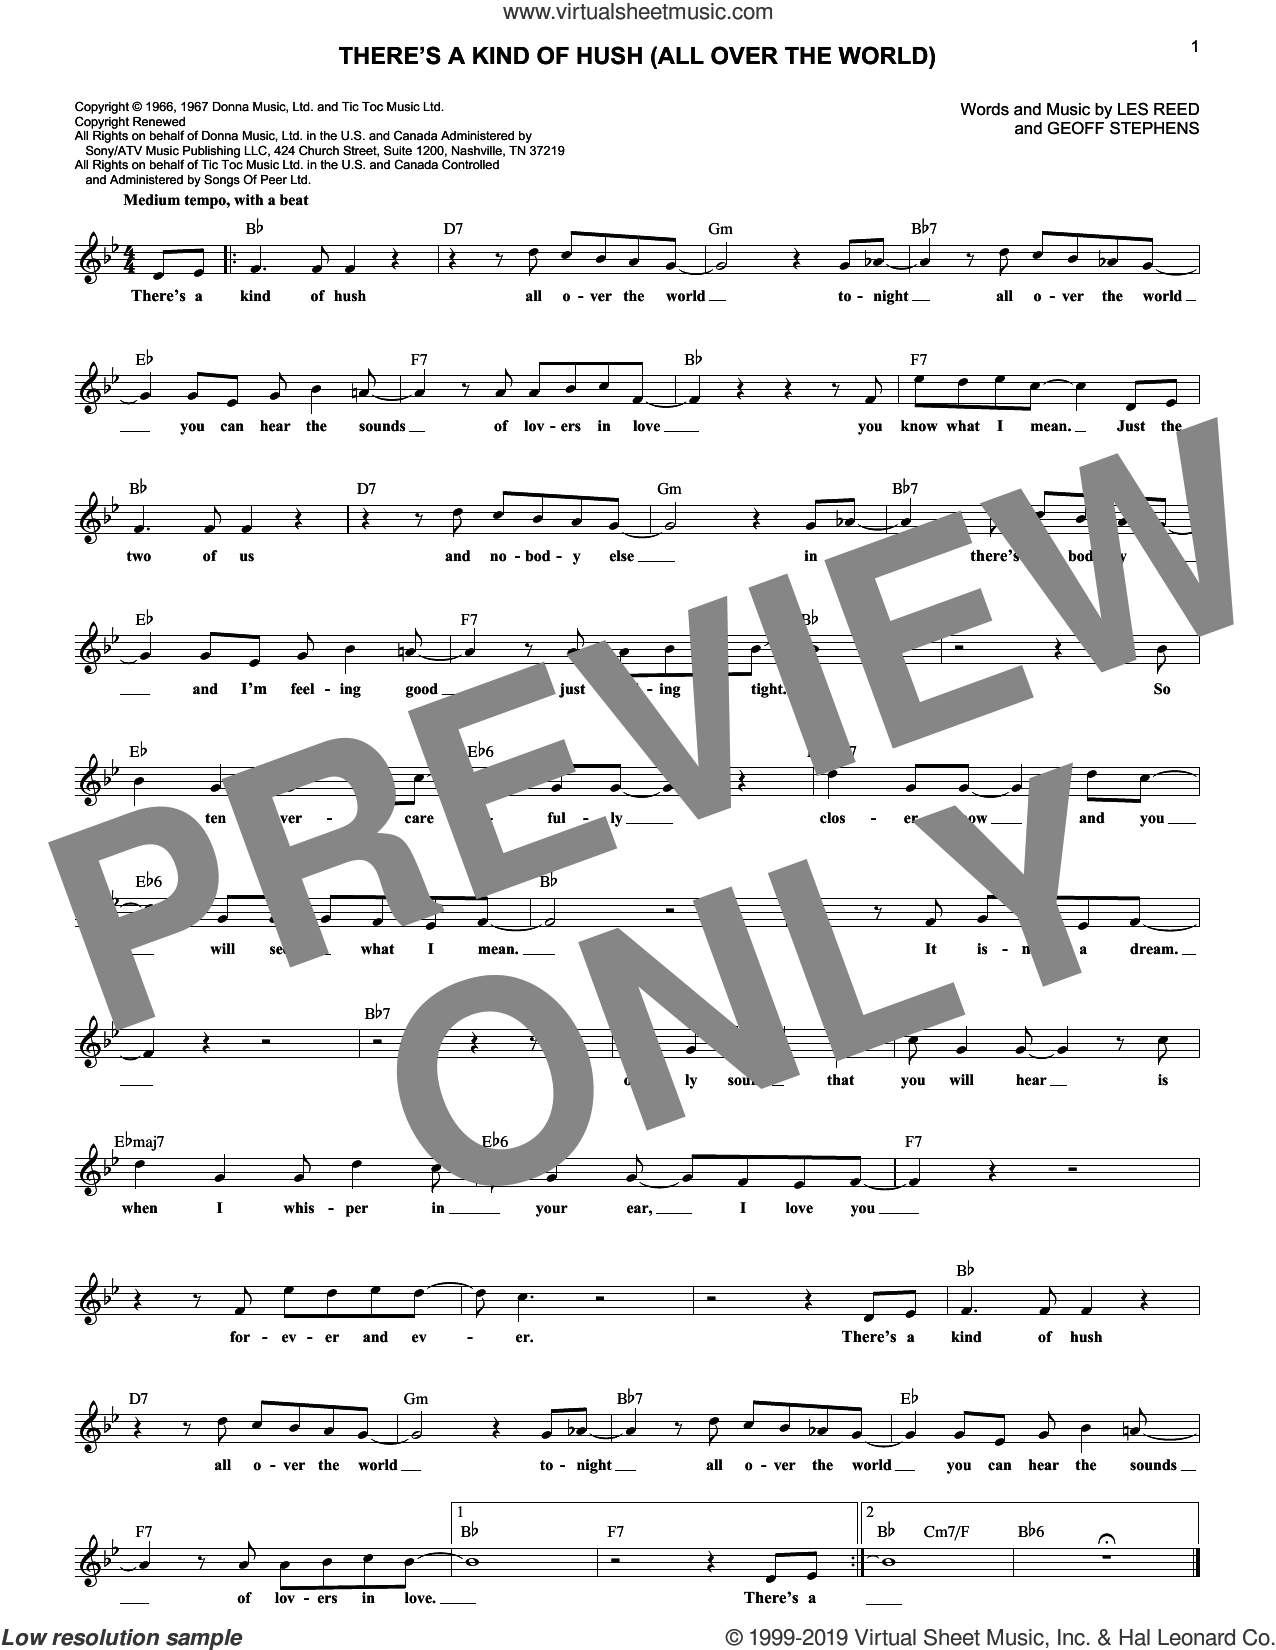 There's A Kind Of Hush (All Over The World) sheet music for voice and other instruments (fake book) by Herman's Hermits, Geoff Stephens and Les Reed, intermediate skill level